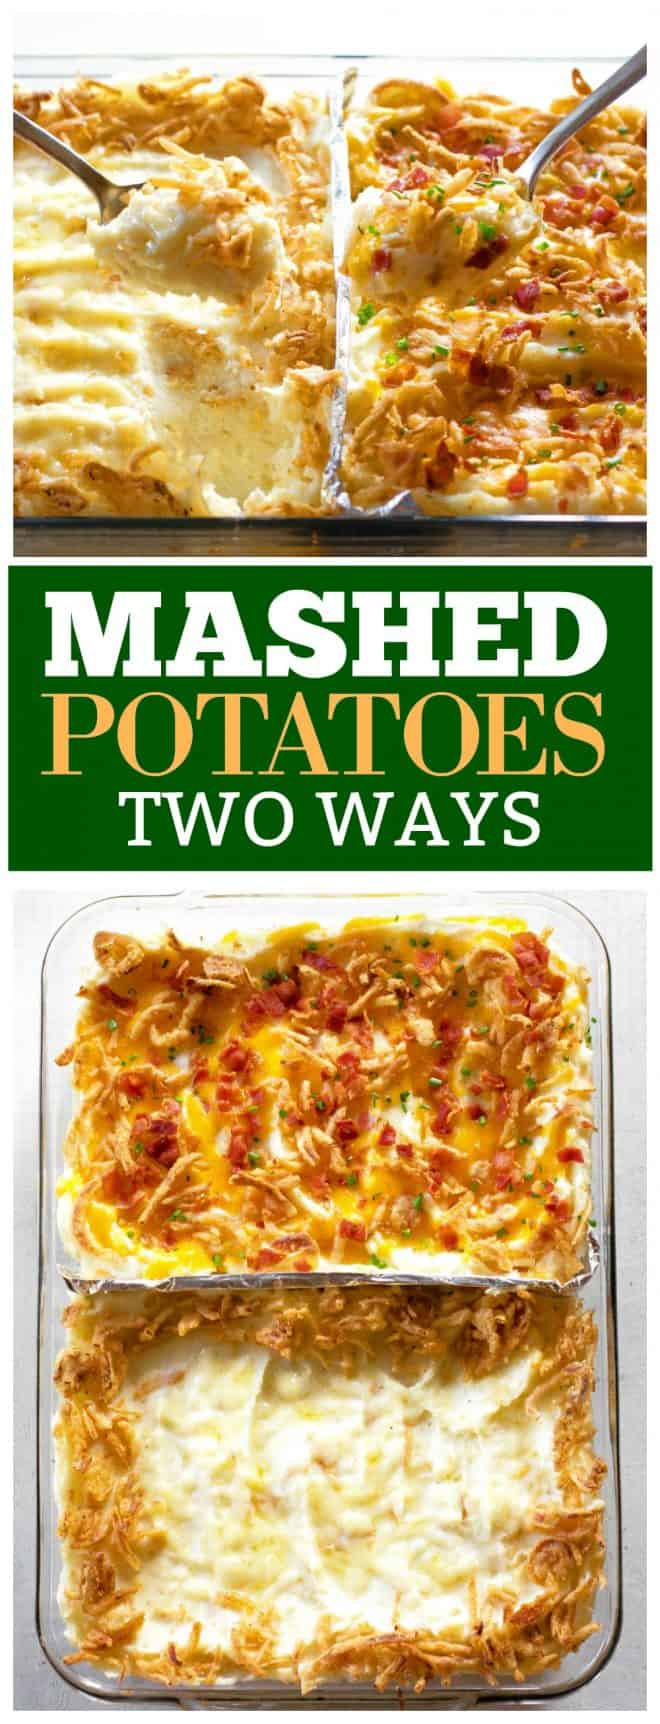 Everyone likes their mashed potatoes a different way, so why not have TWO kinds of mashed potatoes in one pan! I'm sharing with you French Onion Mashed Potatoes and Cheddar Bacon Mashed Potatoes to bring some pizzazz to your Thanksgiving table.